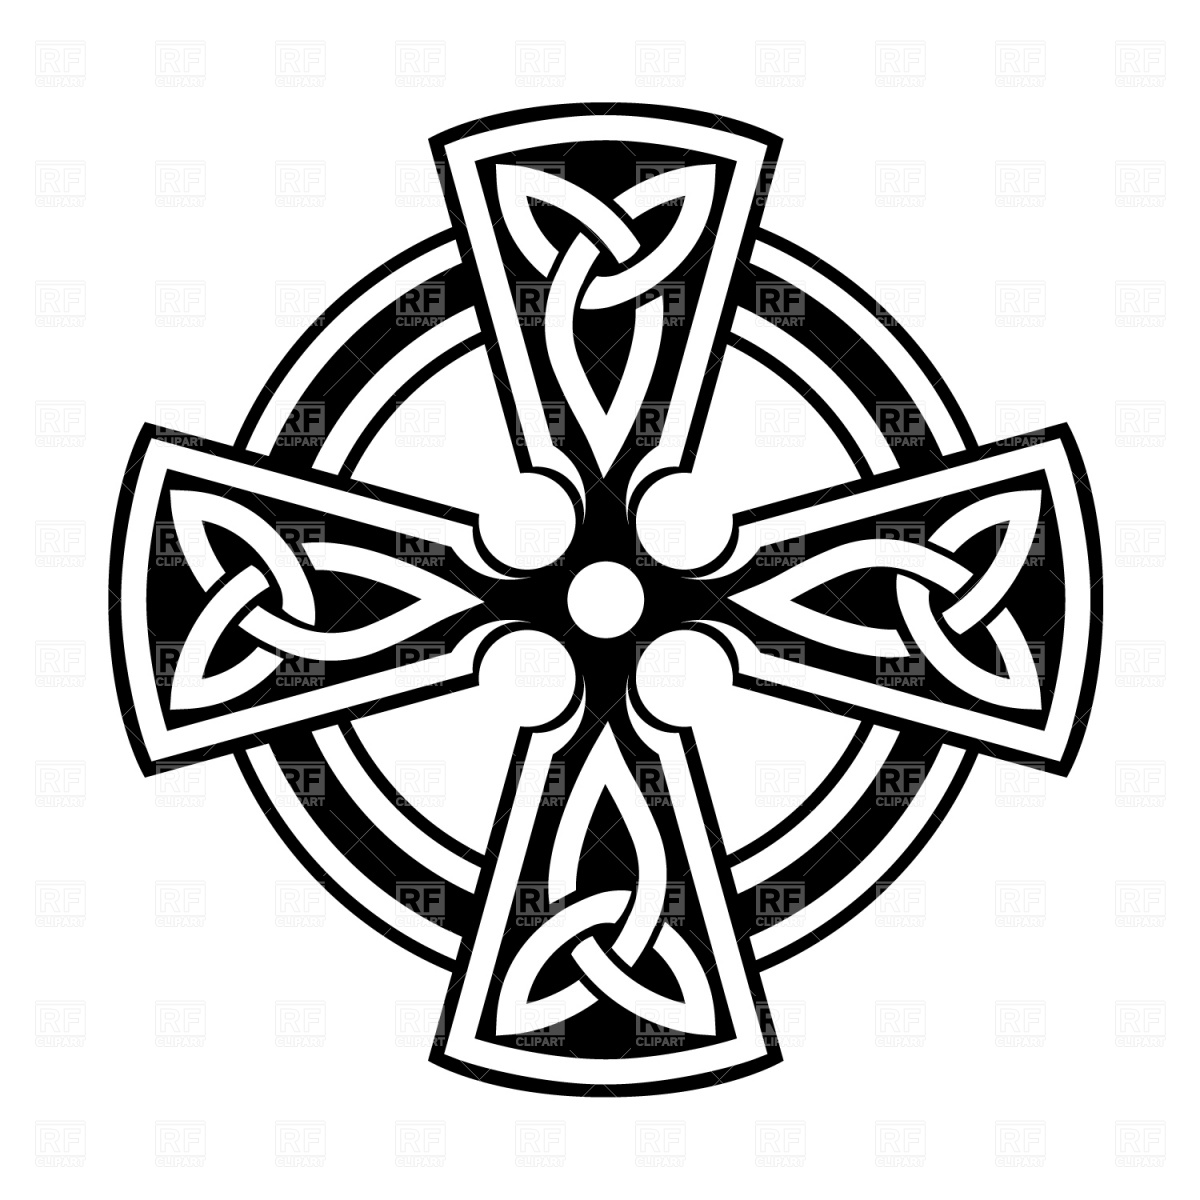 255 Celtic Cross free clipart.